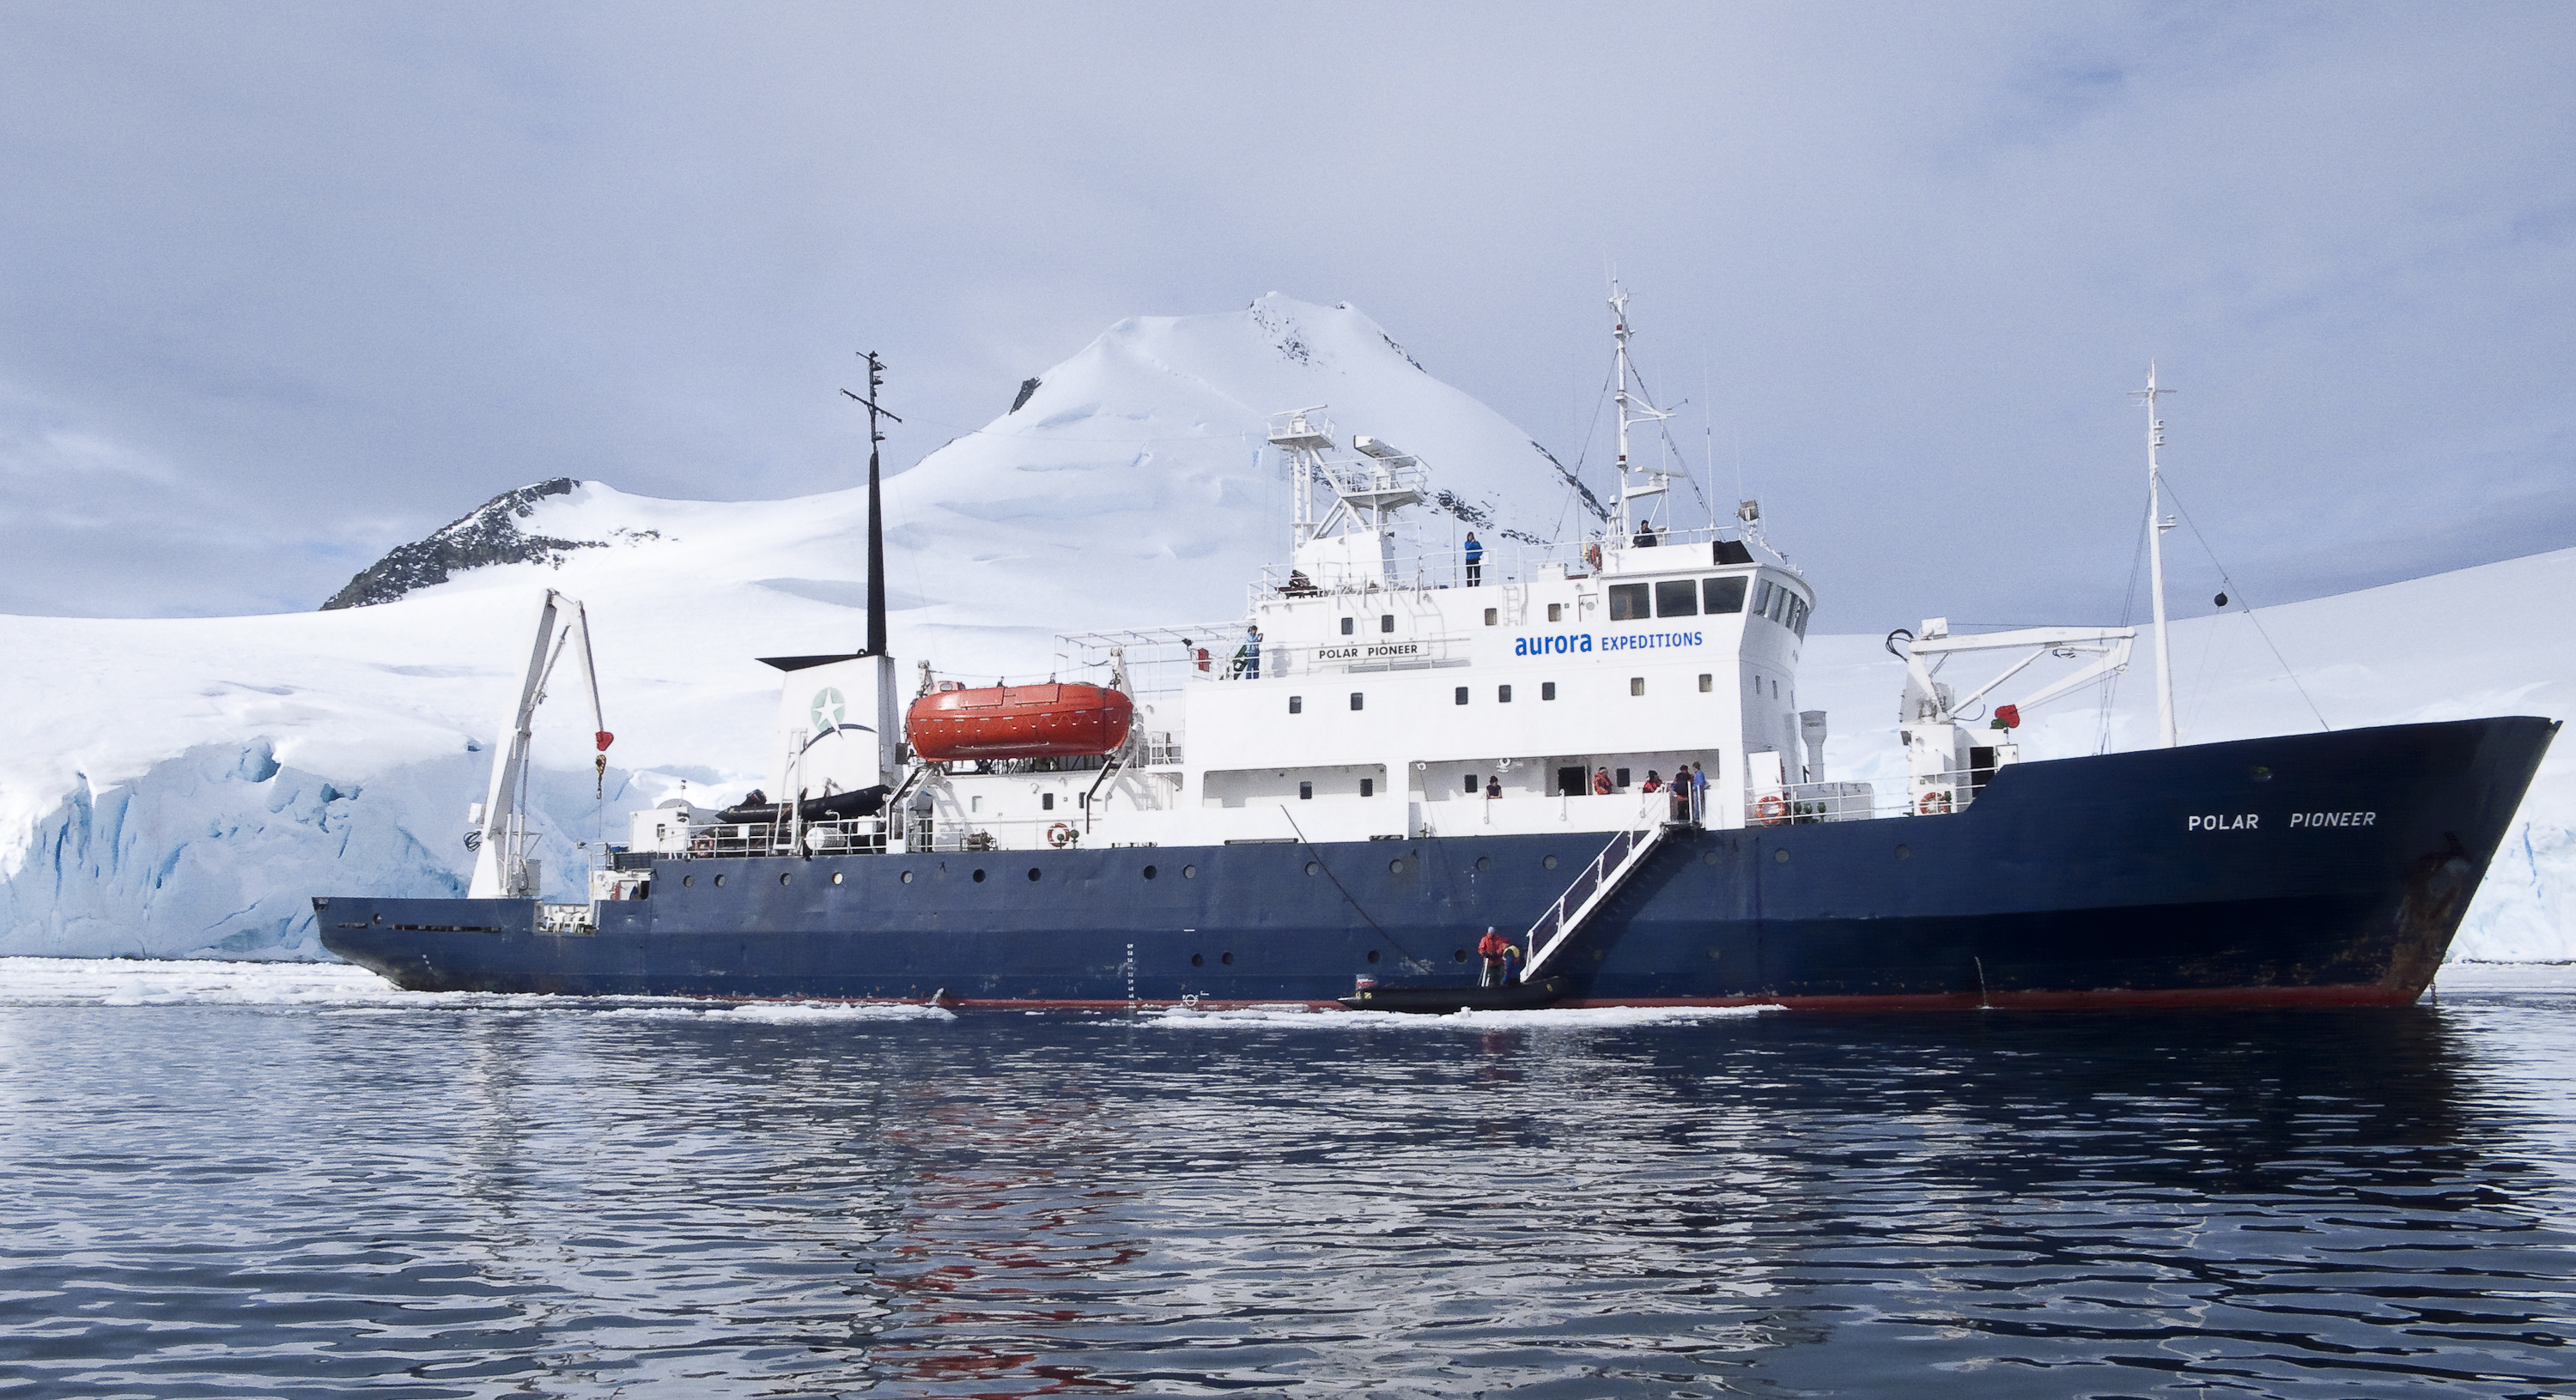 Polar Pioneer, the ship servicing Across The Antarctic Circle